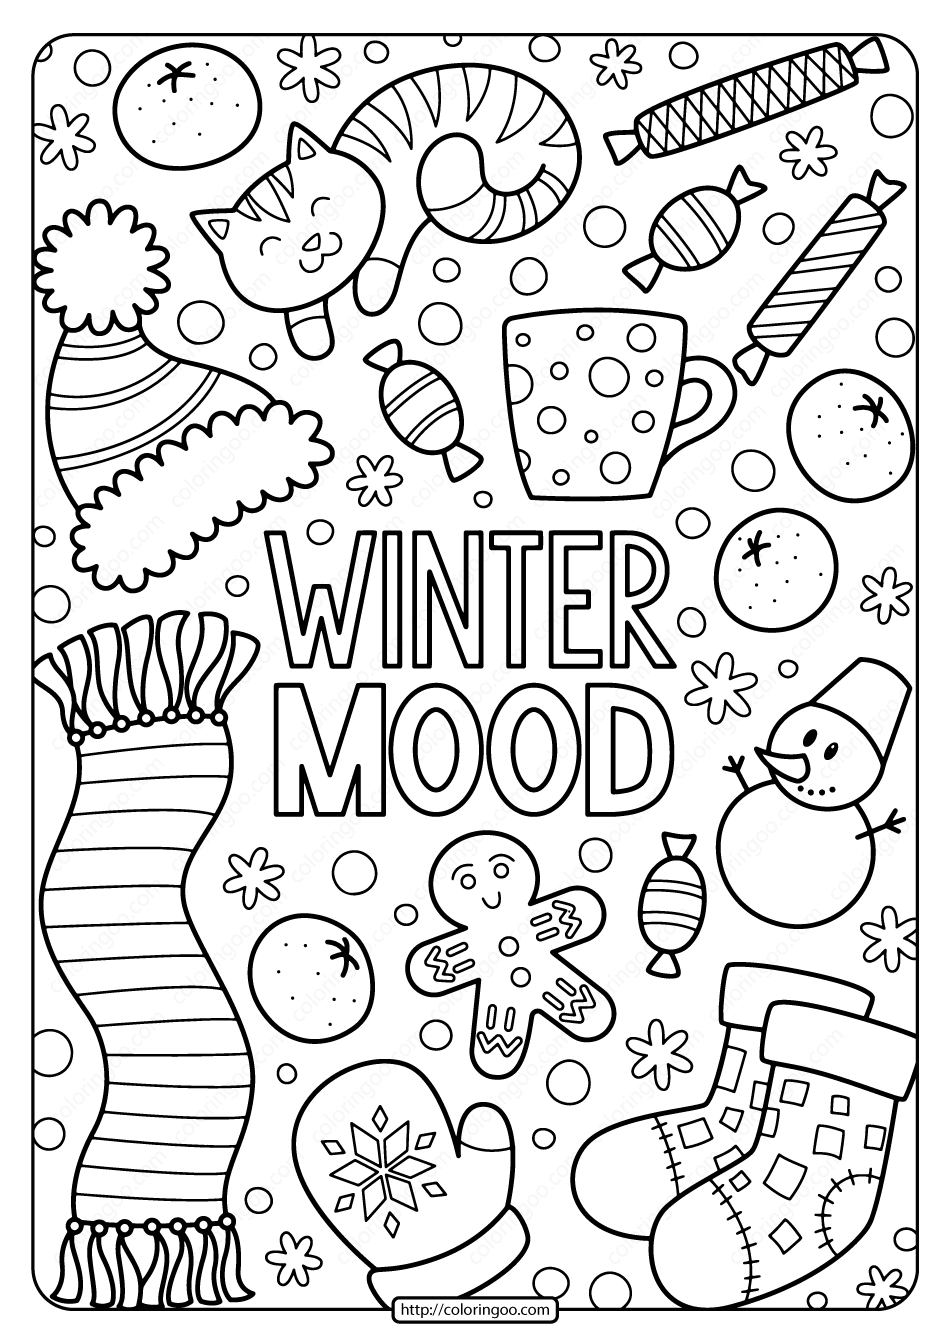 coloring pages printable free free printable halloween coloring pages updated 2021 printable free pages coloring